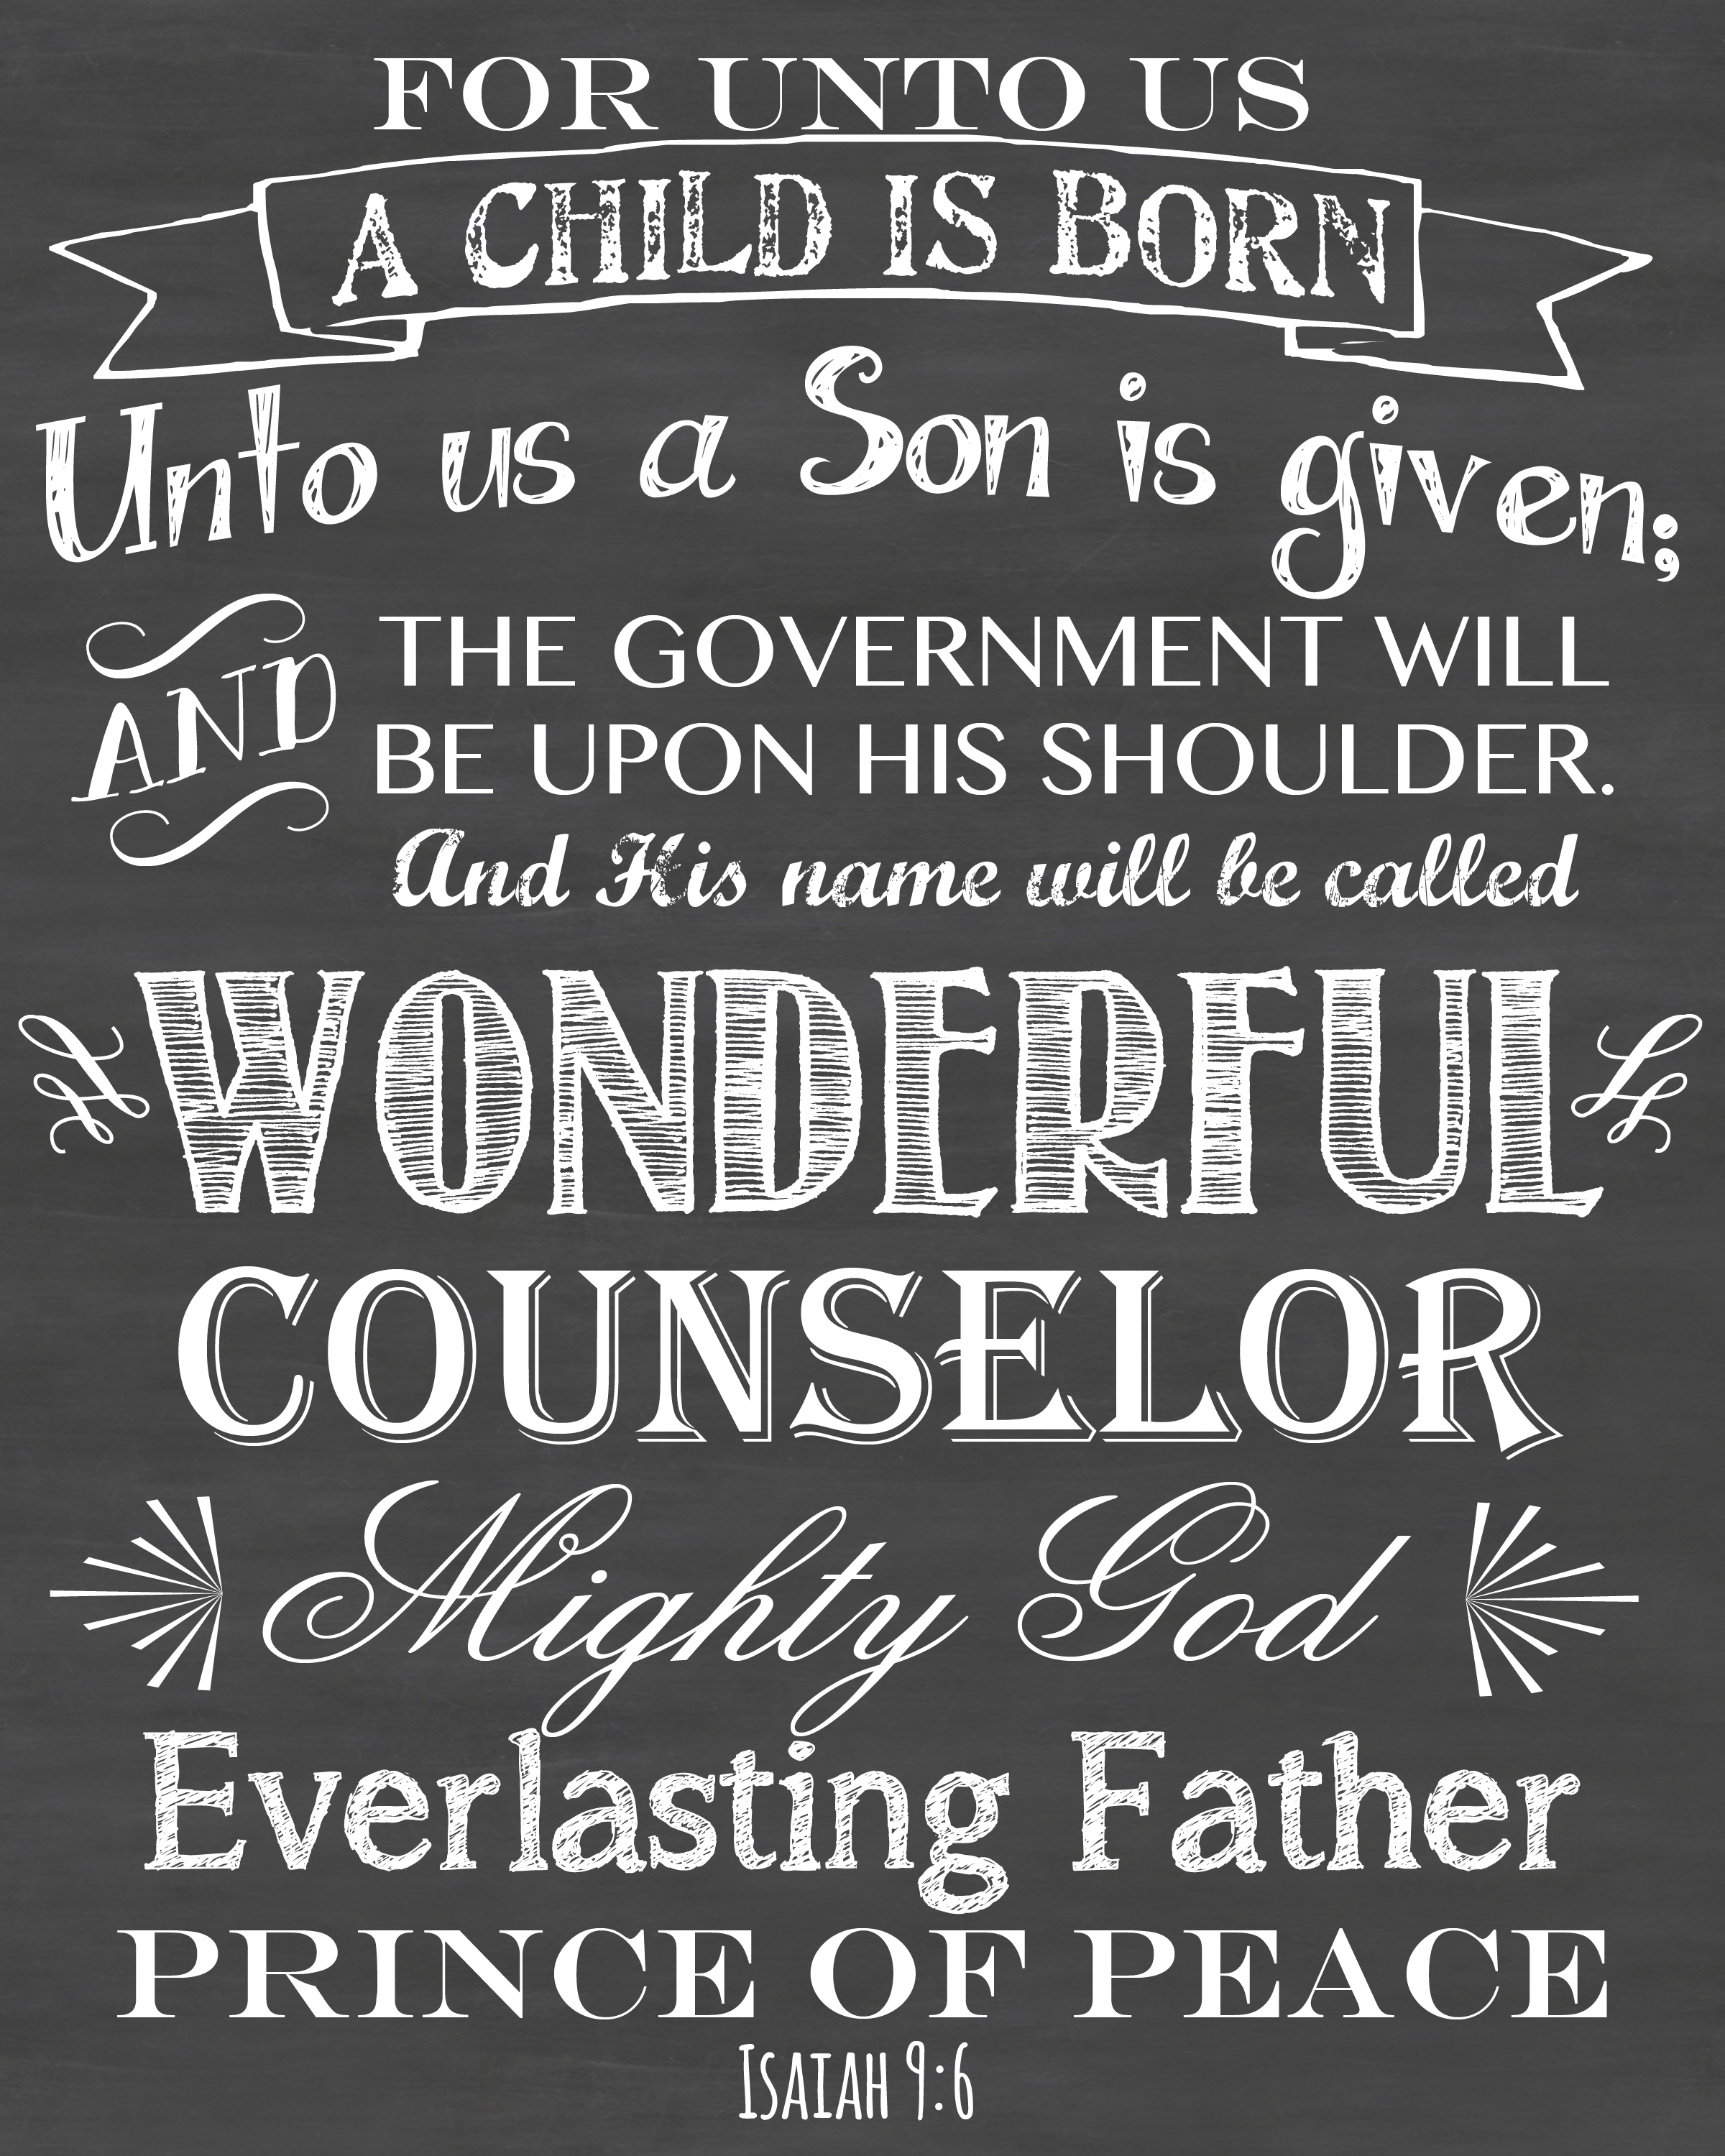 One of my all time favorite Christmas Bible Verses! For Unto Us A Child